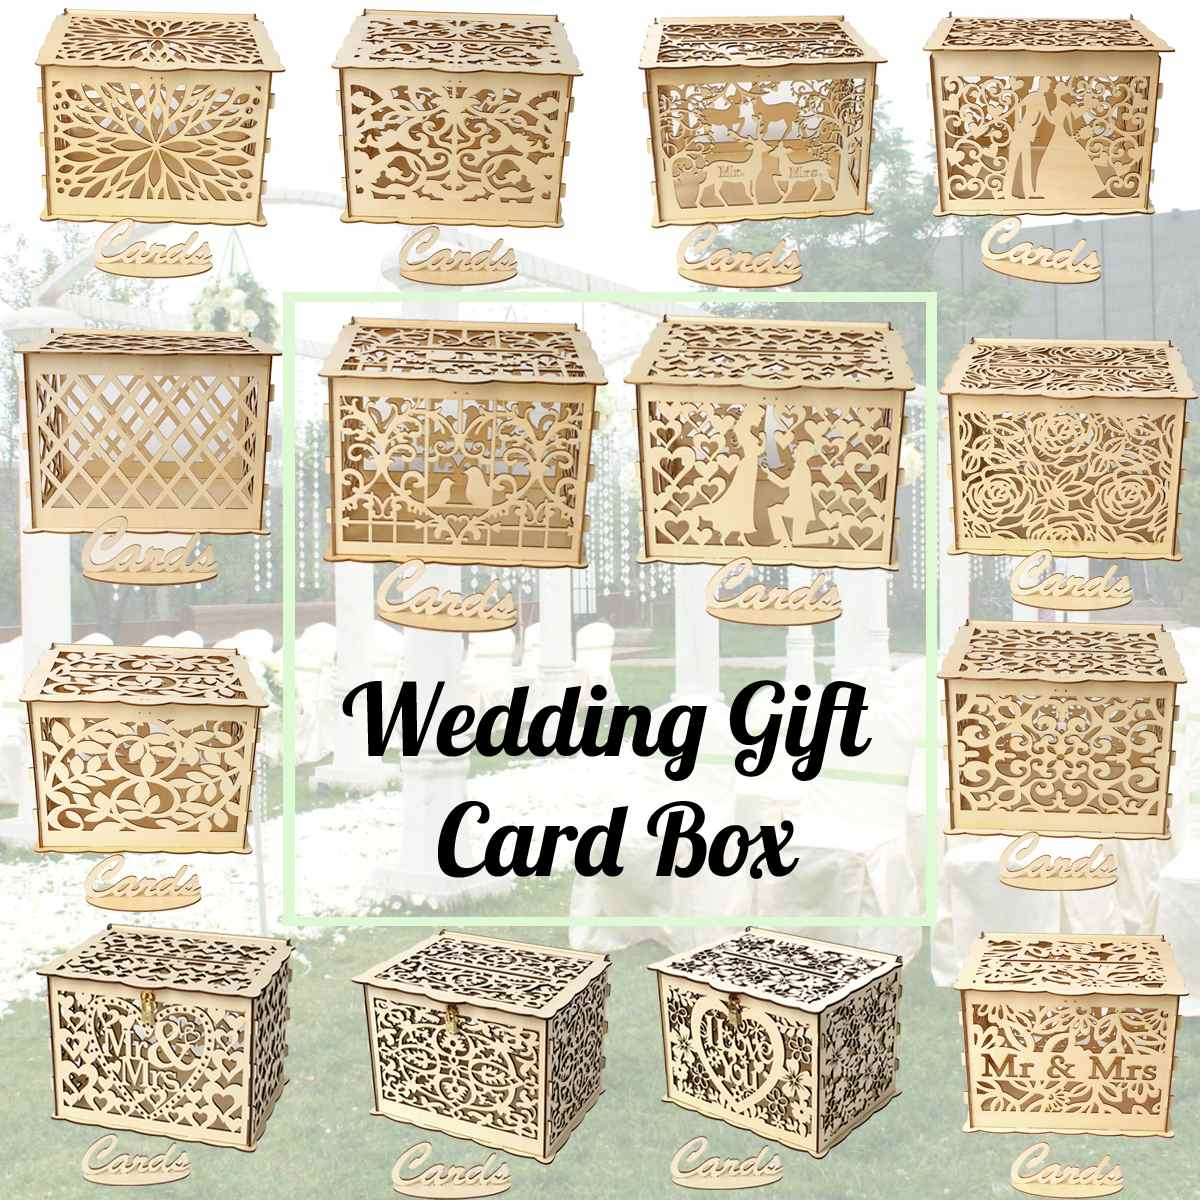 14 Types DIY Wedding Gift Card Box Wooden Money Box With Lock And Key Beautiful Wedding Decoration Supplies For Birthday Party